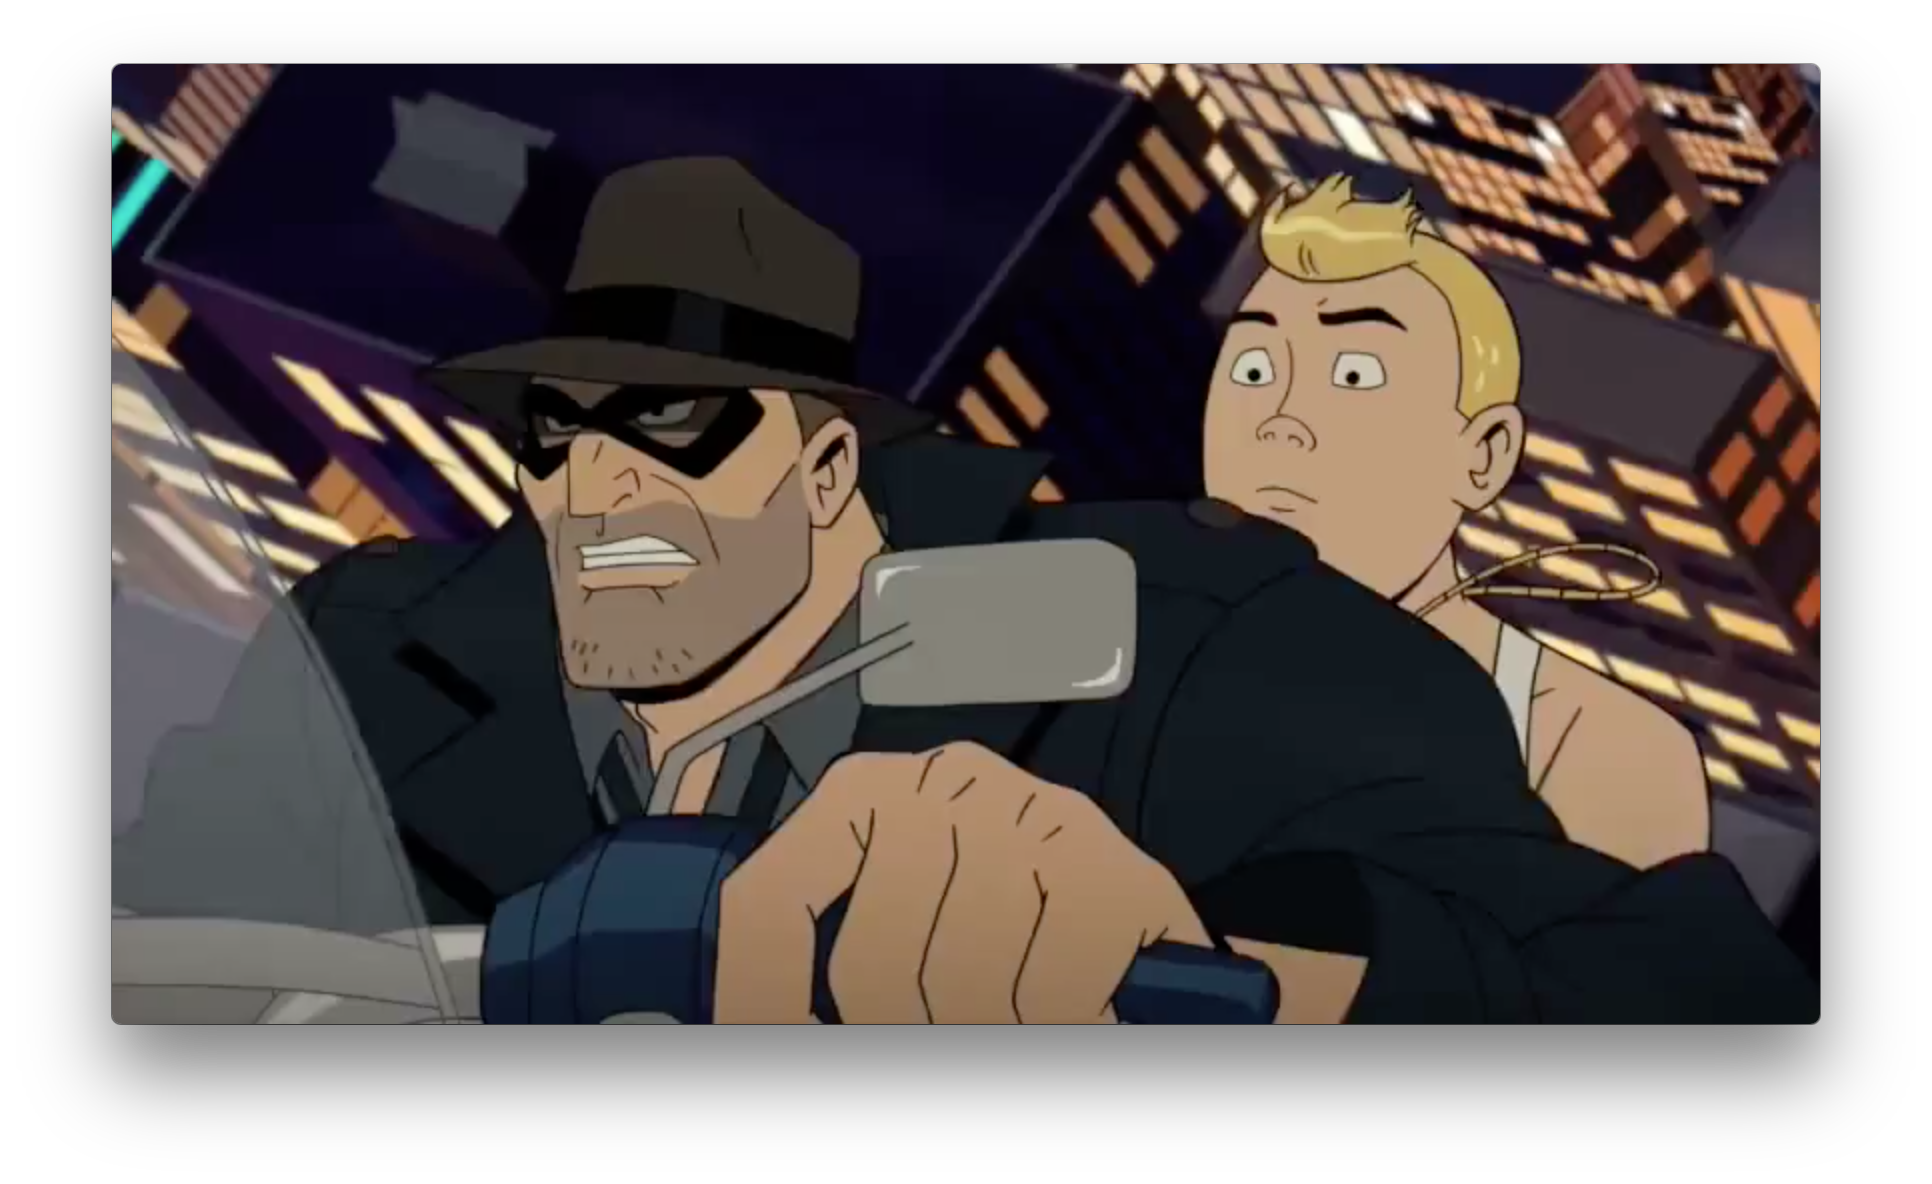 Casear-cut Hank rides on the back of some masked, Indiana Jones type's motorcycle. Is this the start of yet another Hank boy crush on a powerful older man? Let's just hope it goes better than Captain Sunshine.